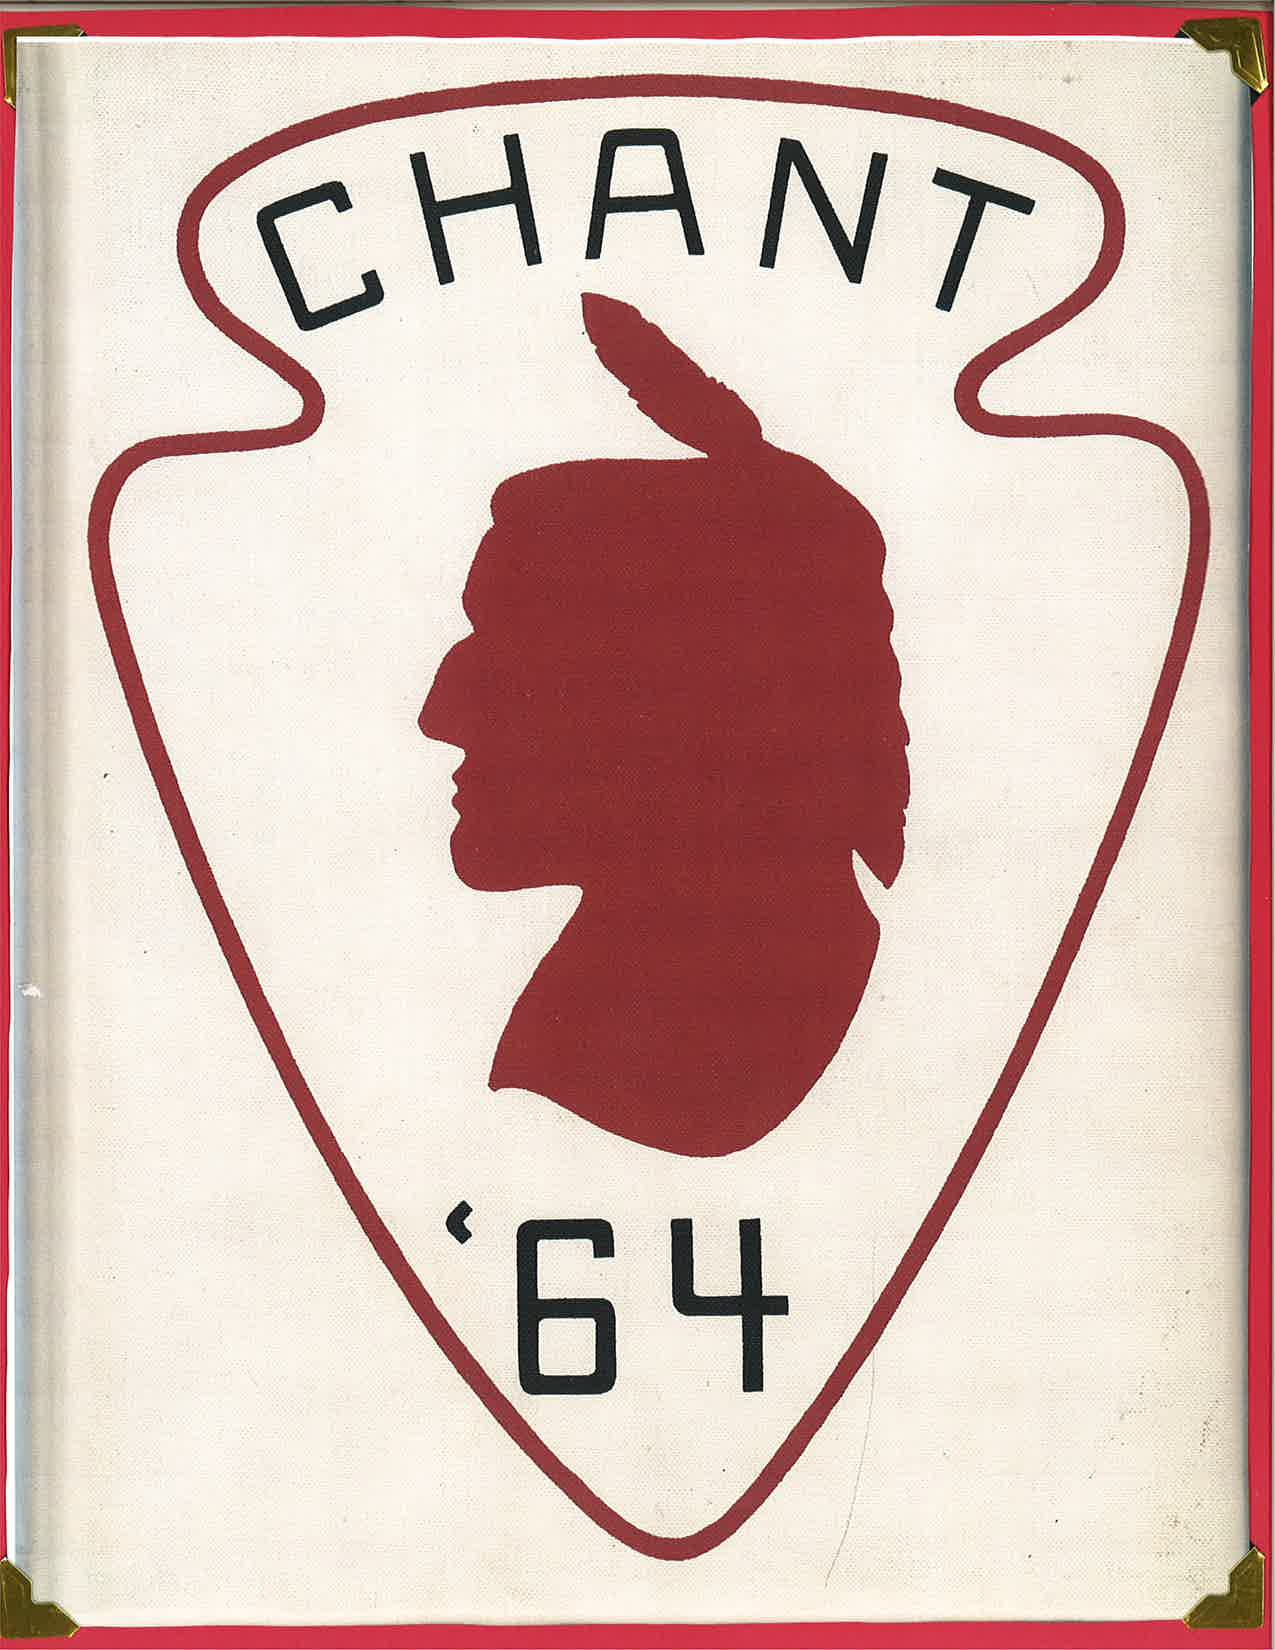 1964_Chant_Cover.jpg